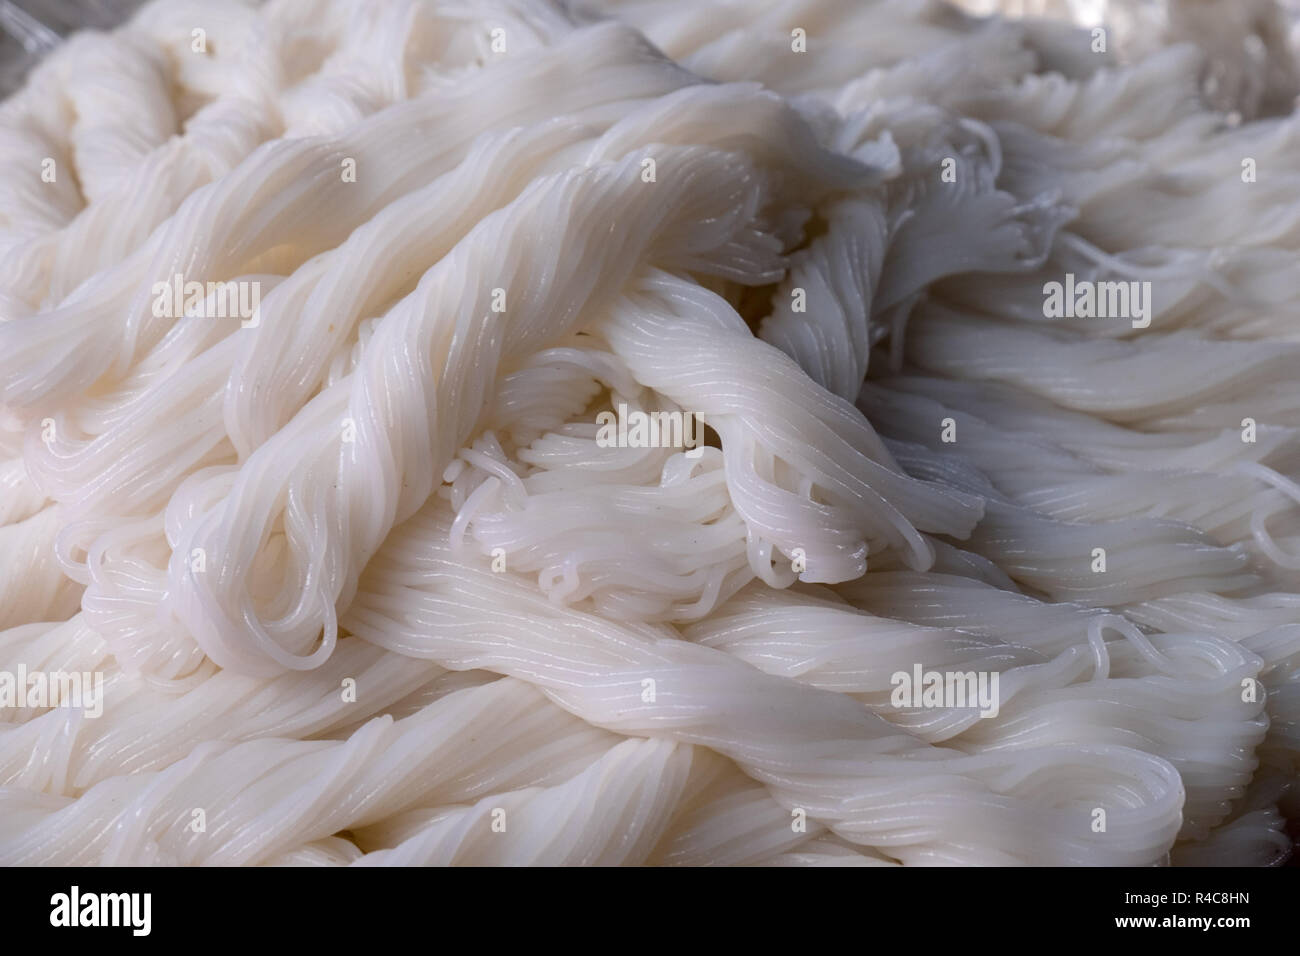 Cooked rice noodles on display at a stall in Dong Ba Market in Hue, Vietnam - Stock Image